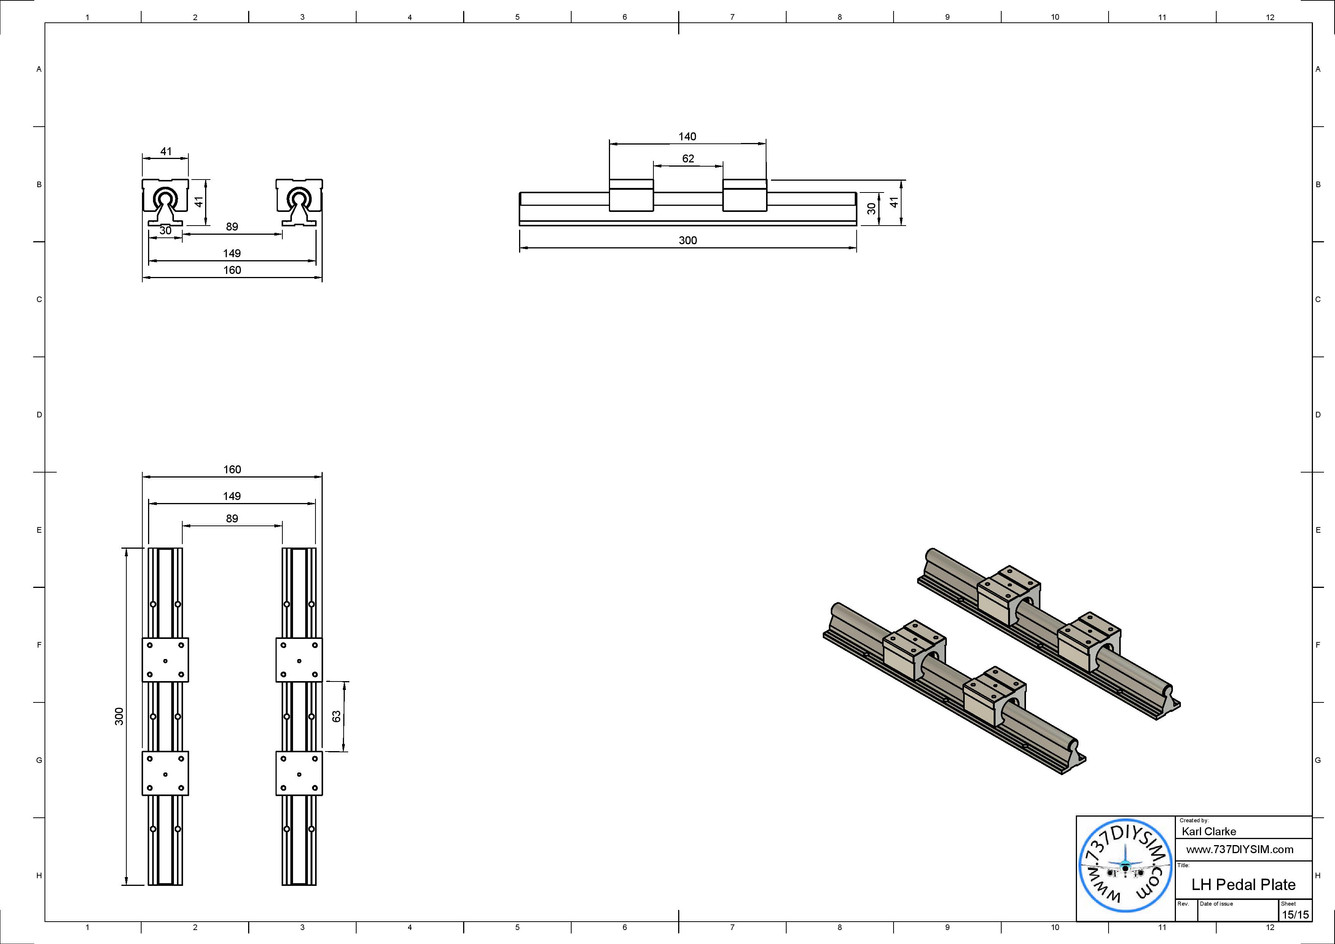 LH Pedal Plate Drawing v1-page-015.jpg